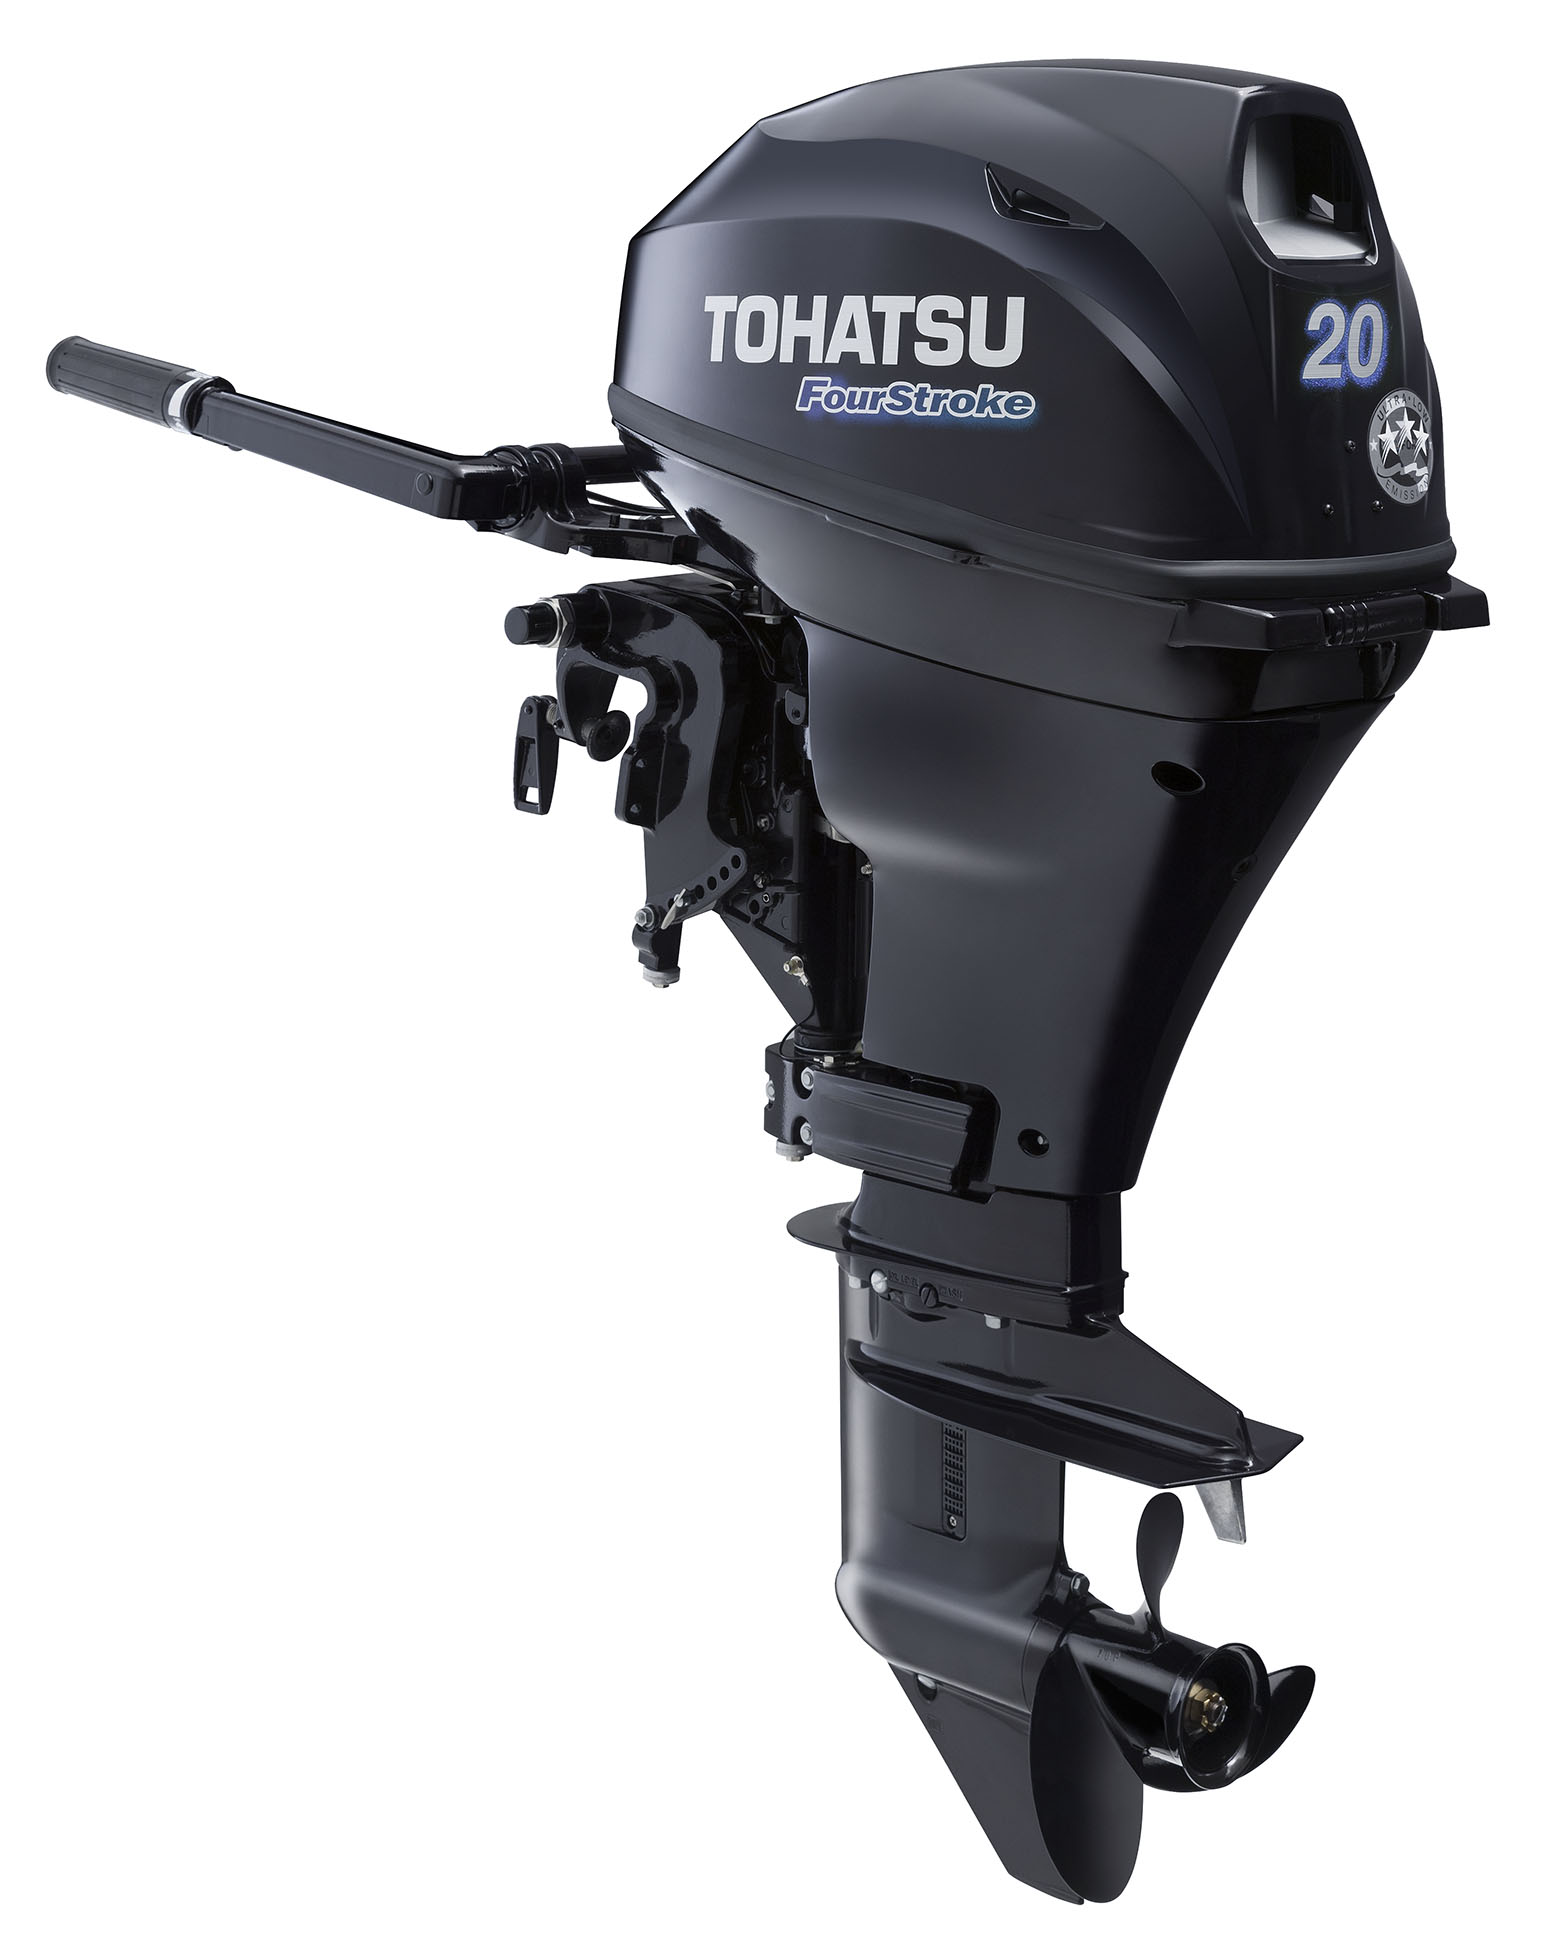 2016 tohatsu 20 hp electric start 4 stroke outboard motor